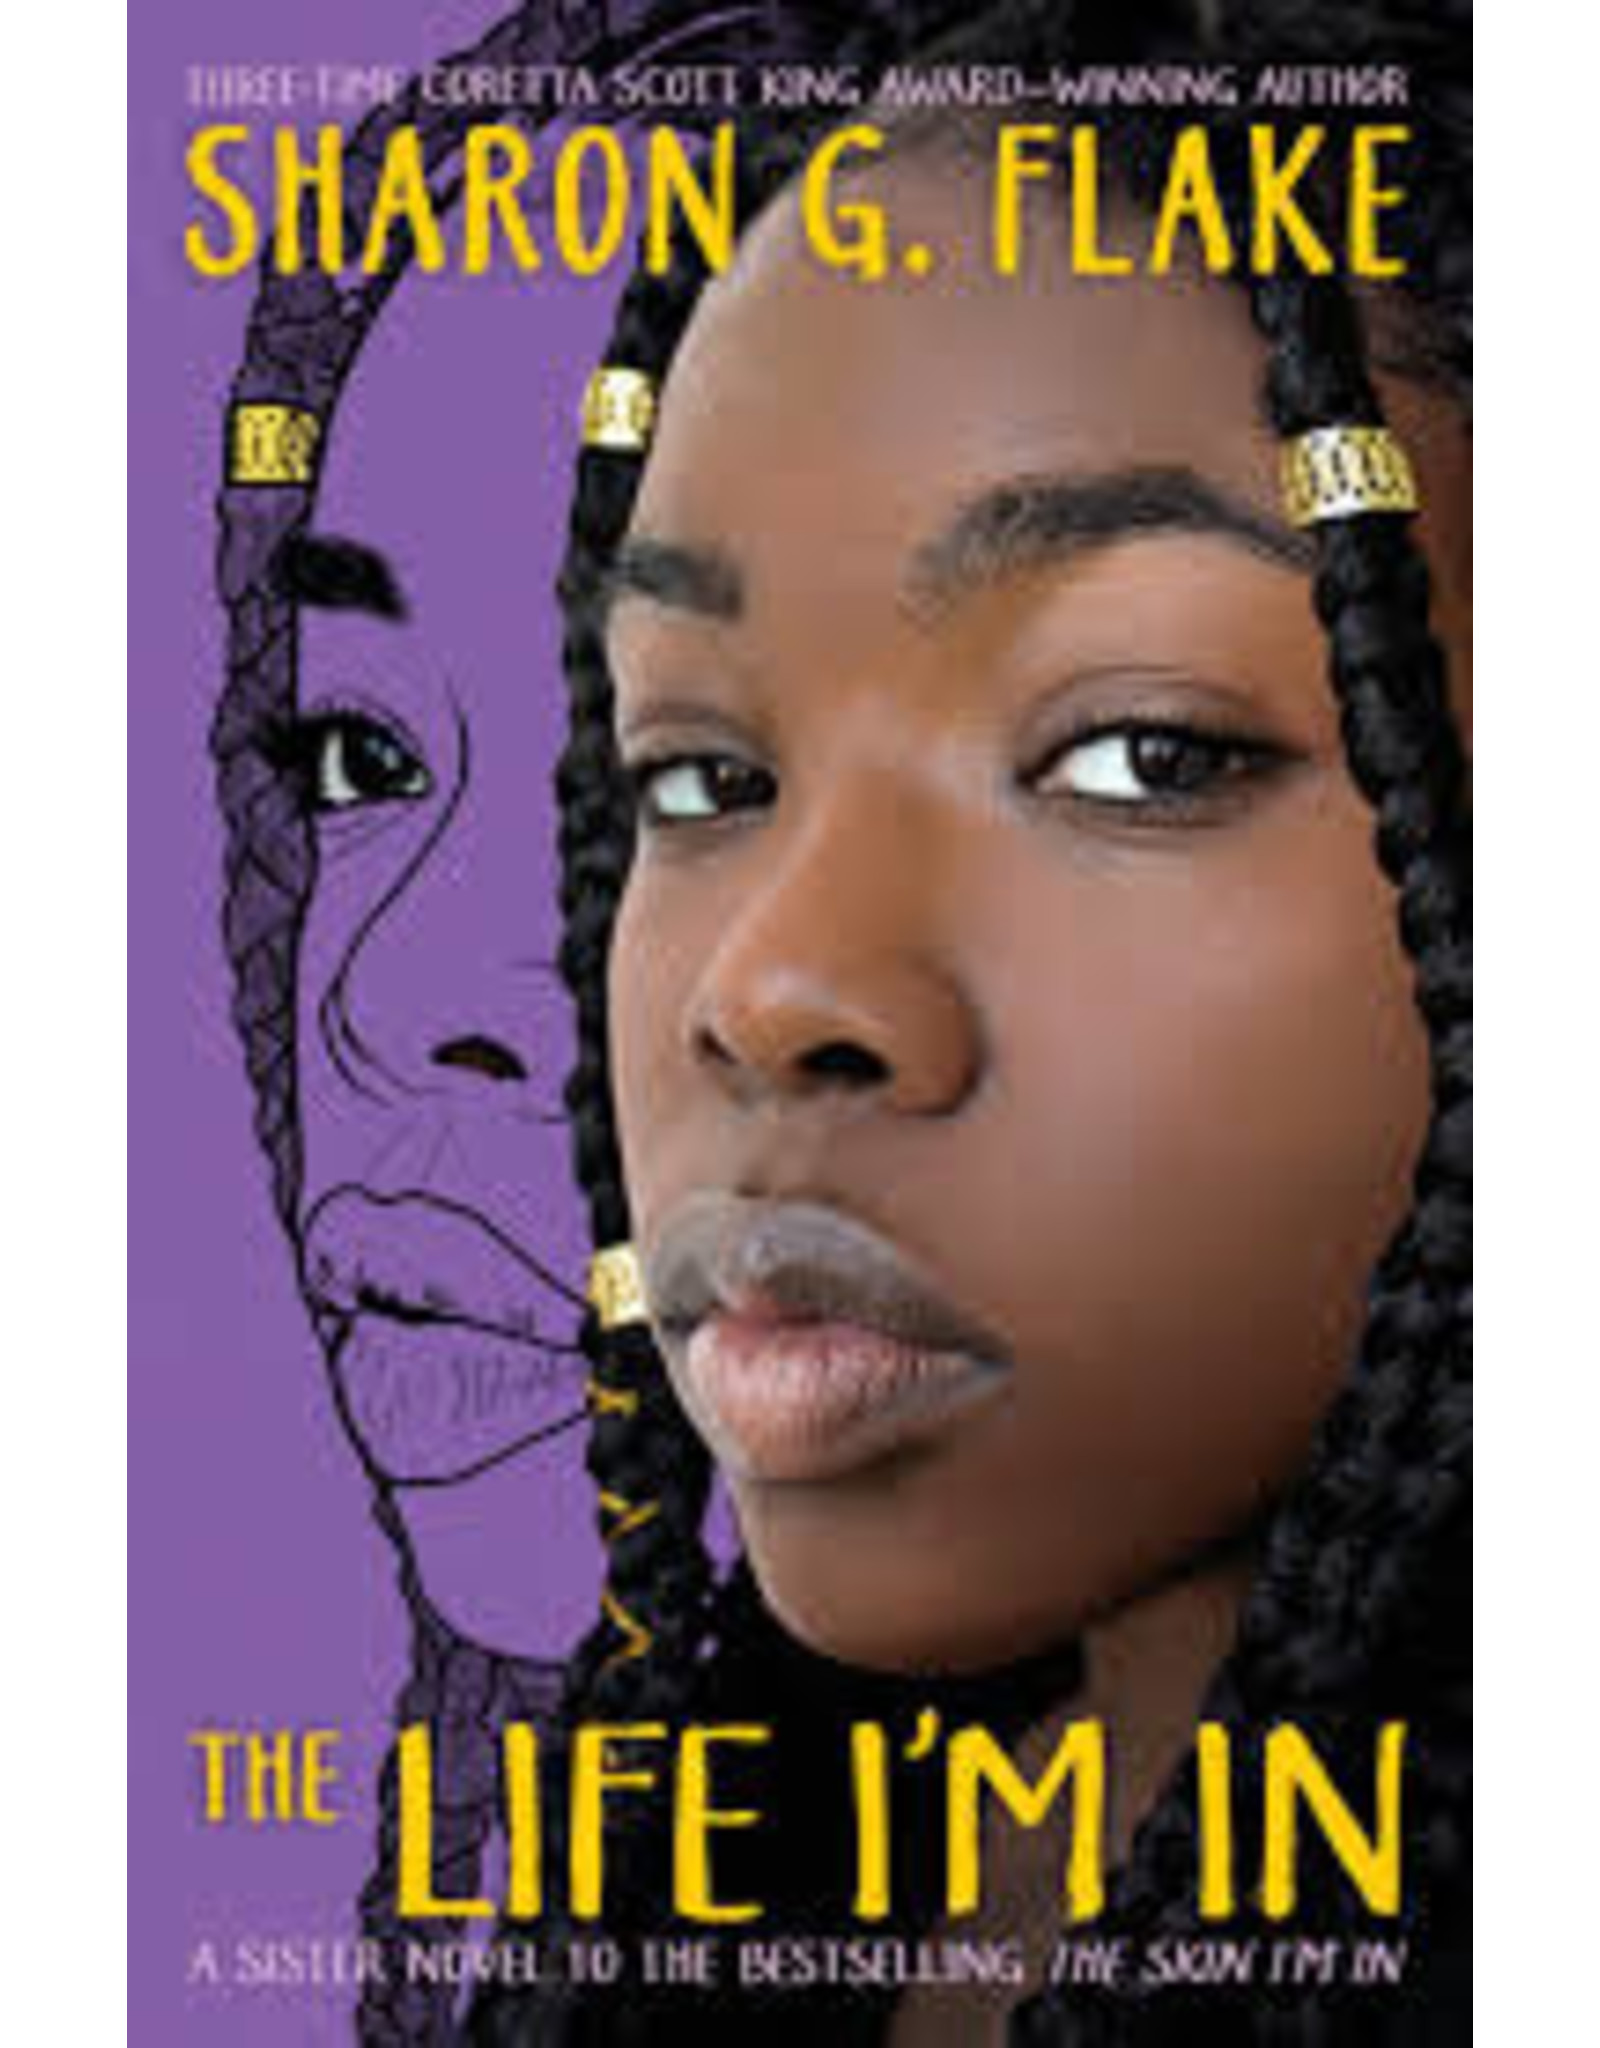 Books The Life I'M IN by Sharon G. Flake